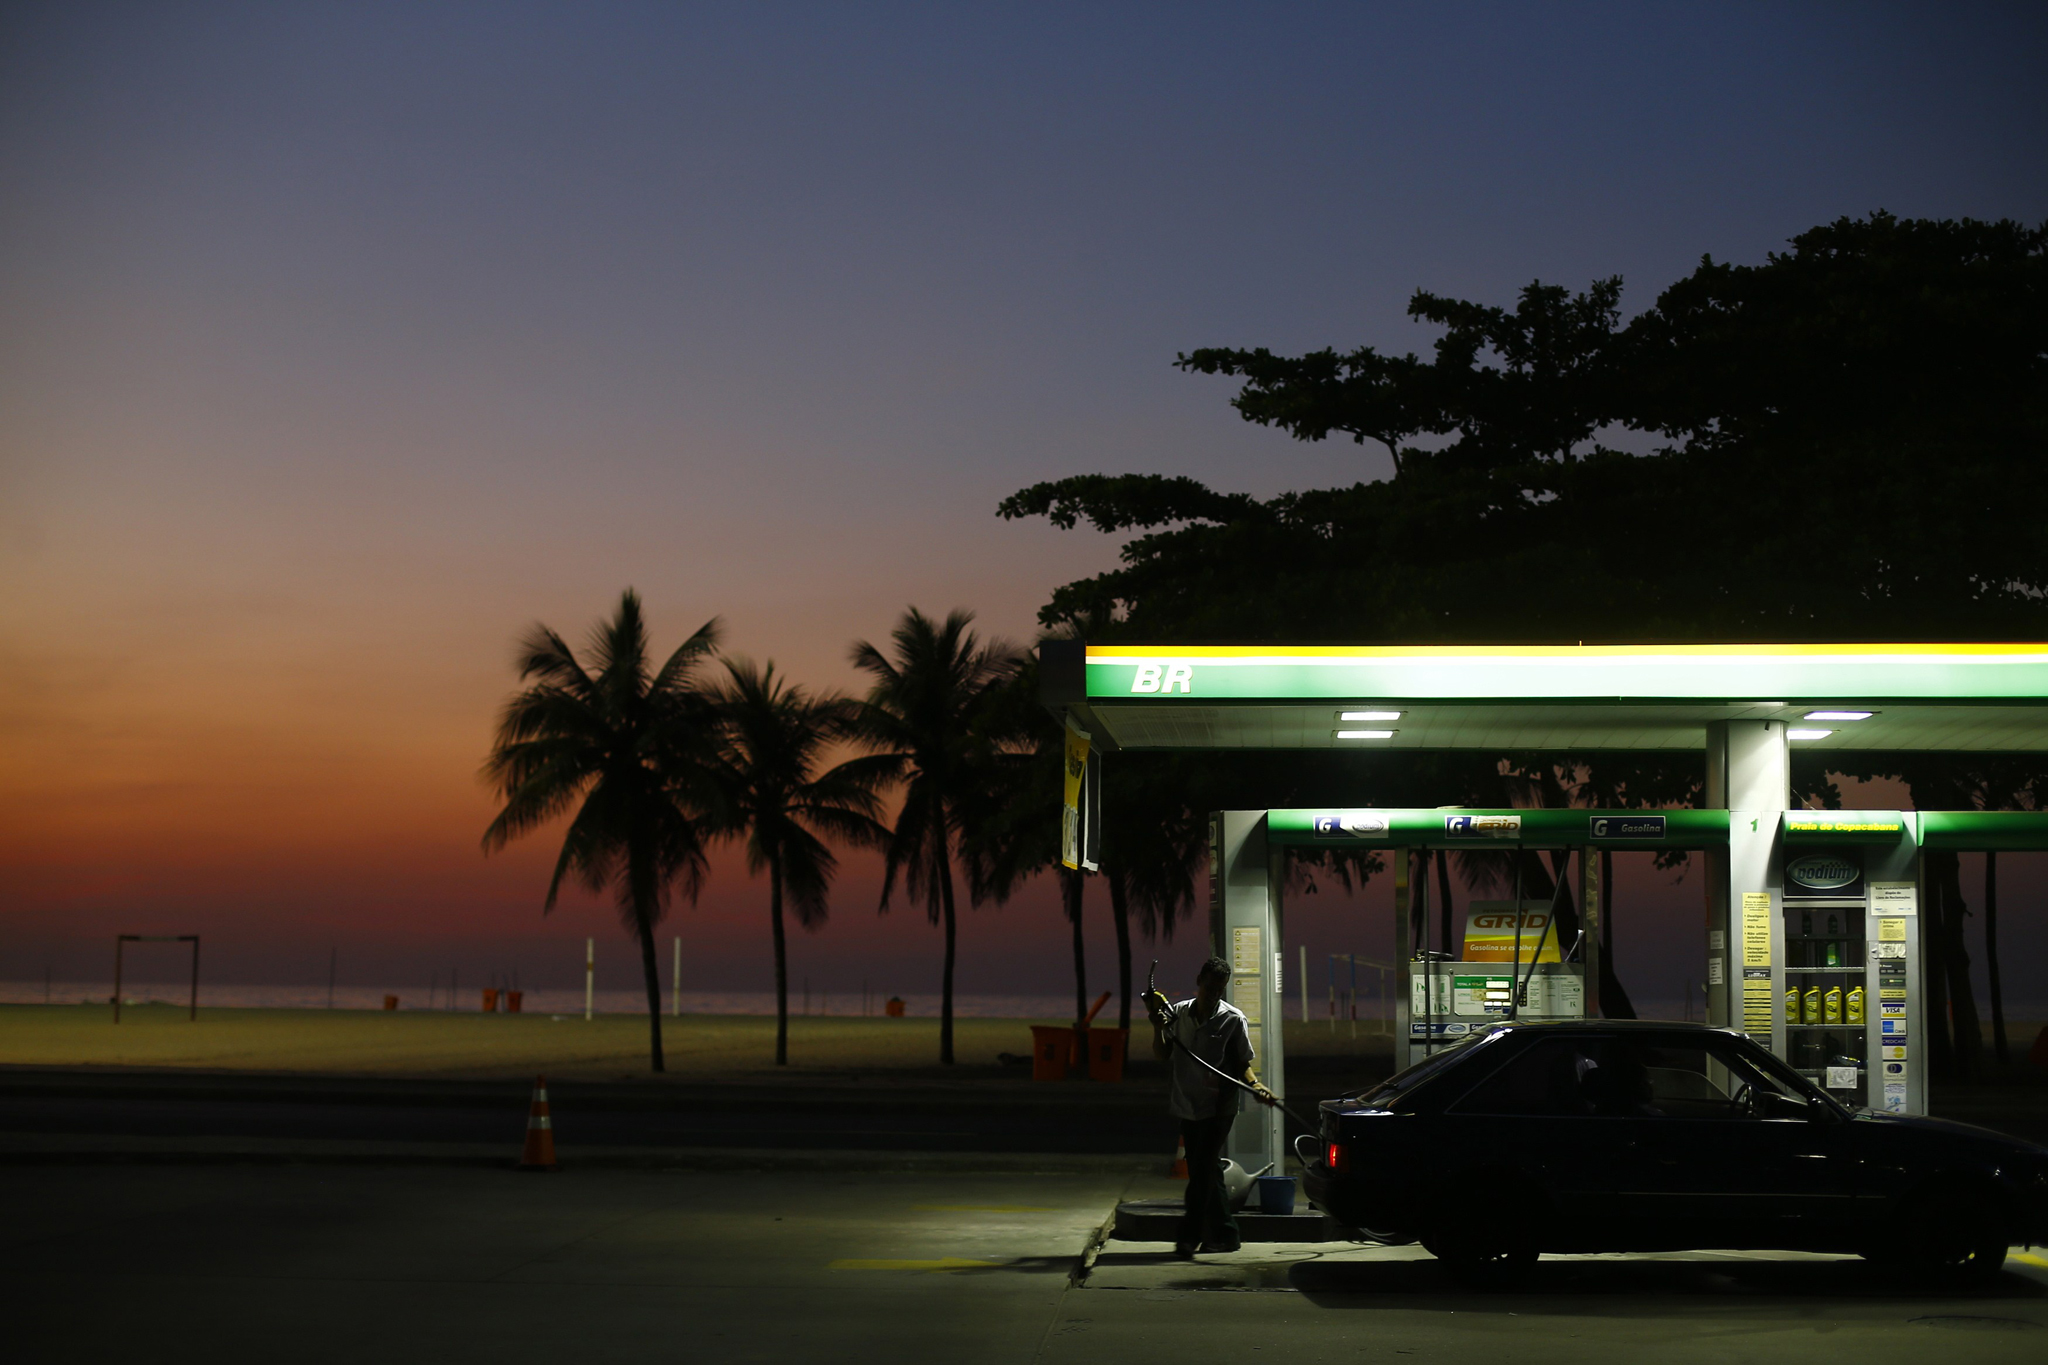 A worker prepares to fill a car at a gas station close to Copacabana beach in Rio de Janeiro...A worker prepares to fill a car at a gas station close to Copacabana beach in Rio de Janeiro, January 12, 2015. Reuters photographers from Mali to Mexico have shot a series of pictures of fuel stations. Whether it is plastic bottles by the roadside in Malaysia or a futuristic forecourt in Los Angeles, fuel stations help define our world. Oil prices steadied above $48 a barrel on Tuesday, recovering from earlier losses as the dollar weakened against the euro. Oil prices have dropped nearly 60 percent since peaking in June 2014 on ample global supplies from the U.S. shale oil boom and a decision by OPEC to keep its production quotas unchanged.   REUTERS/Ricardo Moraes (BRAZIL - Tags: TRANSPORT BUSINESS COMMODITIES ENERGY TPX IMAGES OF THE DAY)    ATTENTION EDITORS: PICTURE 01 OF 26 FOR WIDER IMAGE PACKAGE 'AT THE PUMP - THE WORLD FILLS UP'     SEARCH 'WORLD FILLS UP' FOR ALL IMAGES